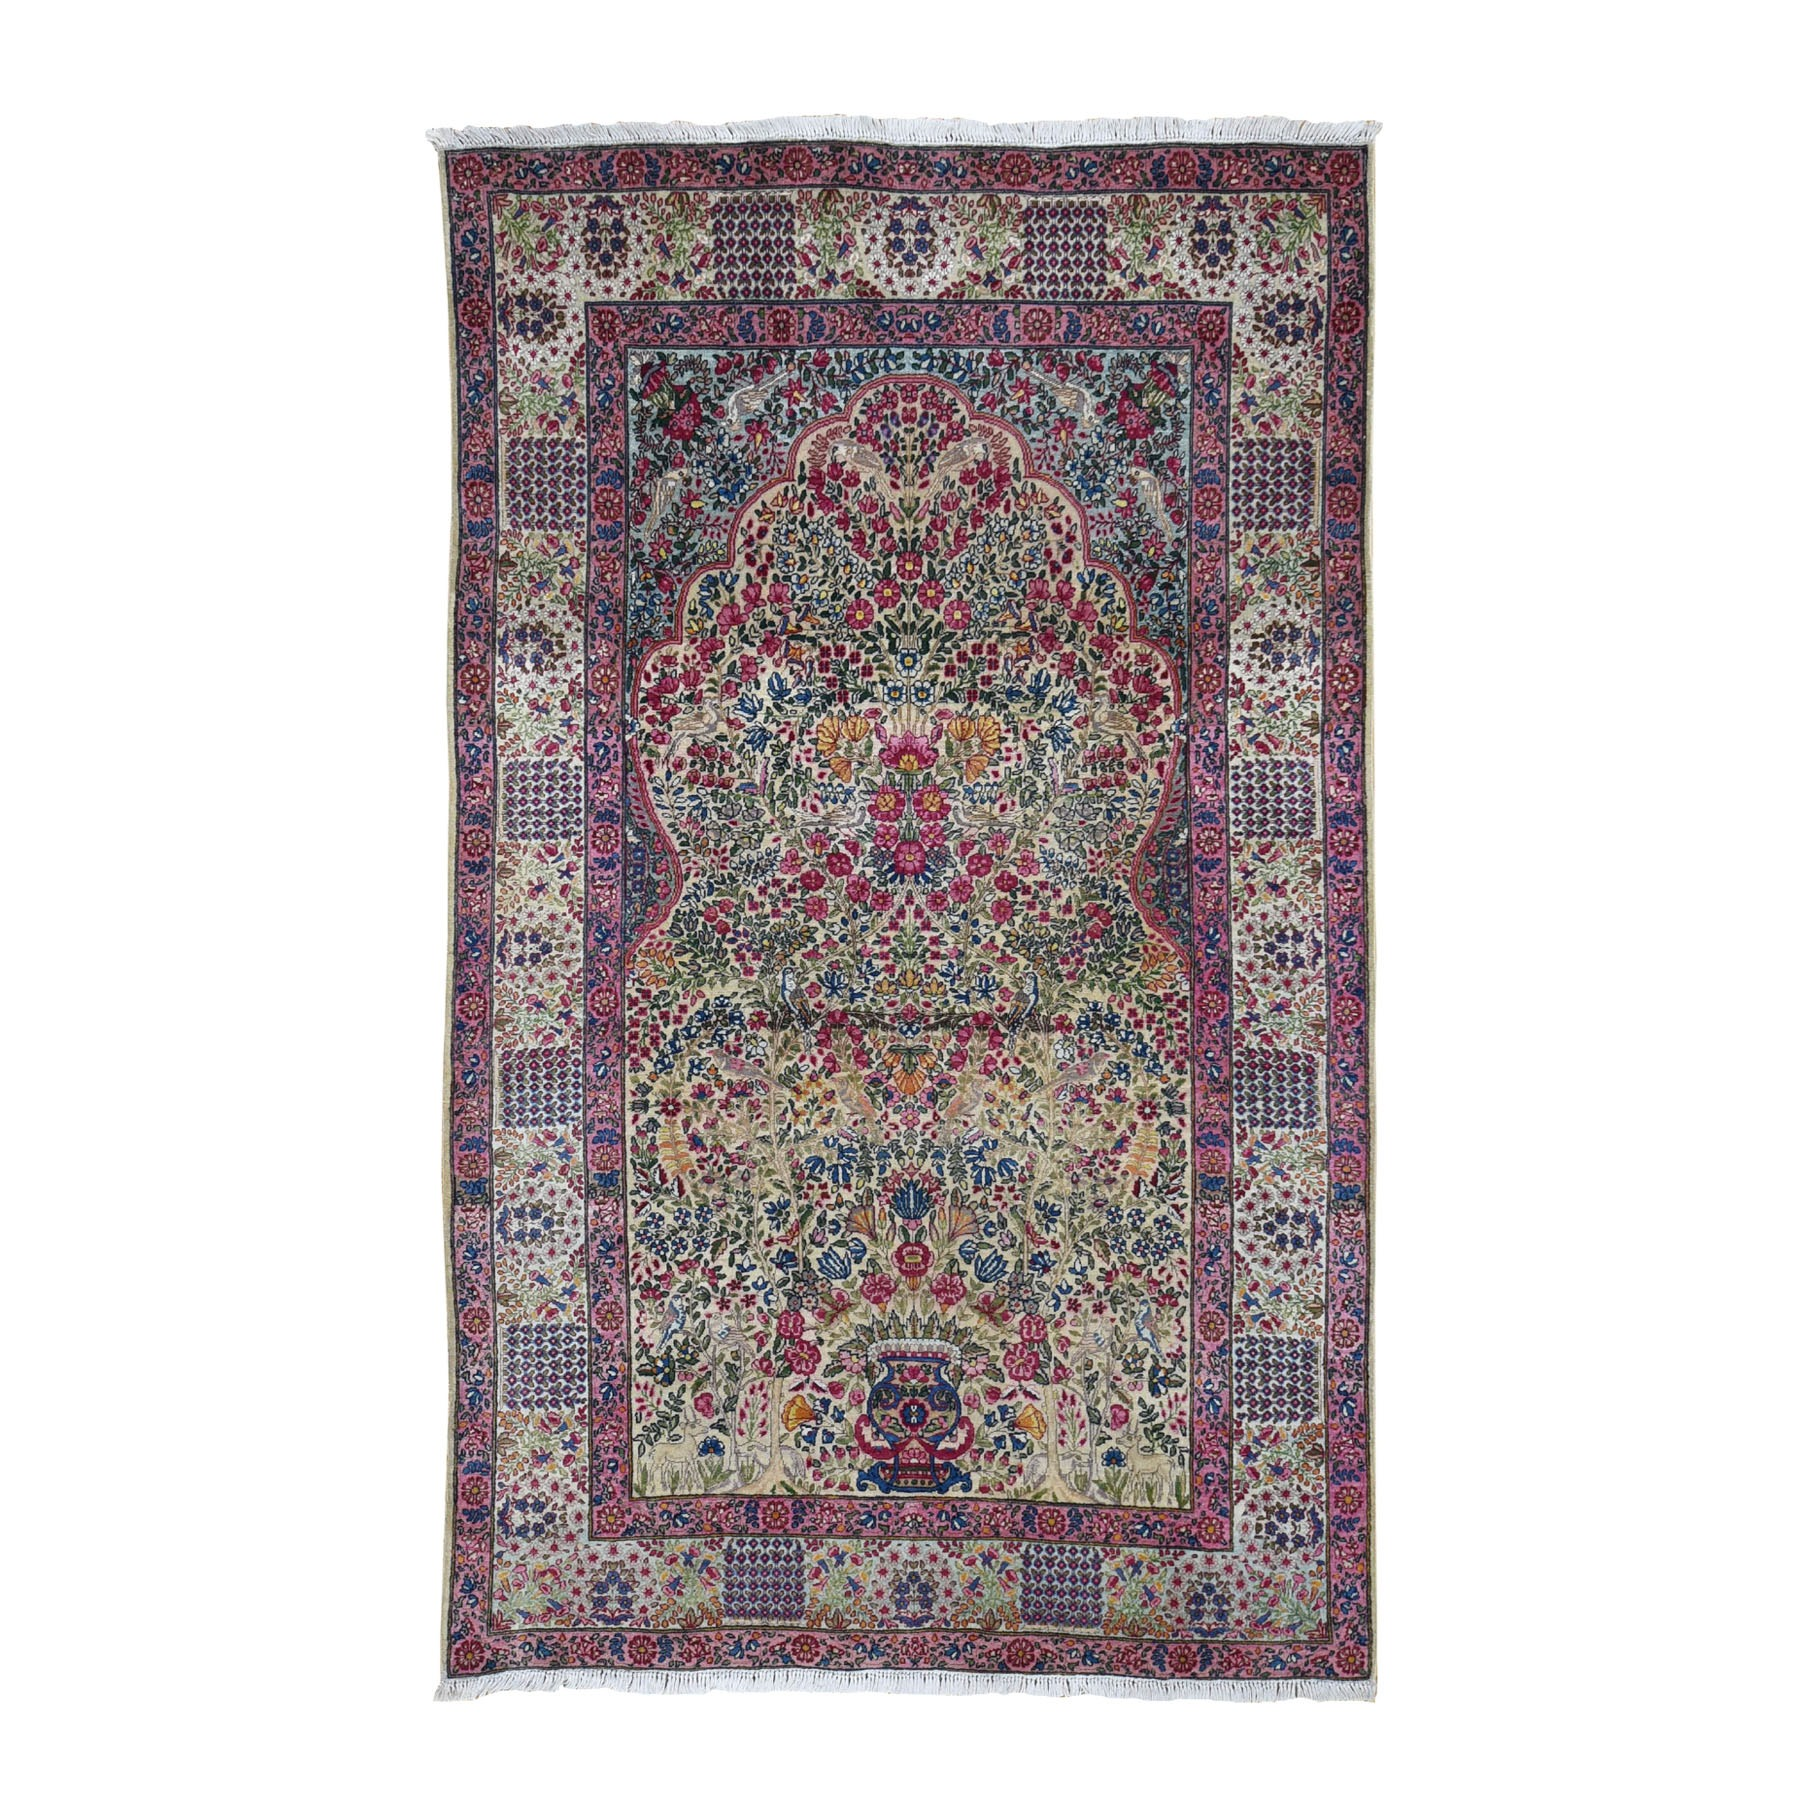 "4'7""x7'5"" Antique Persian Lavar Kerman vaze Design With Birds hand Knotted Oriental Rug"